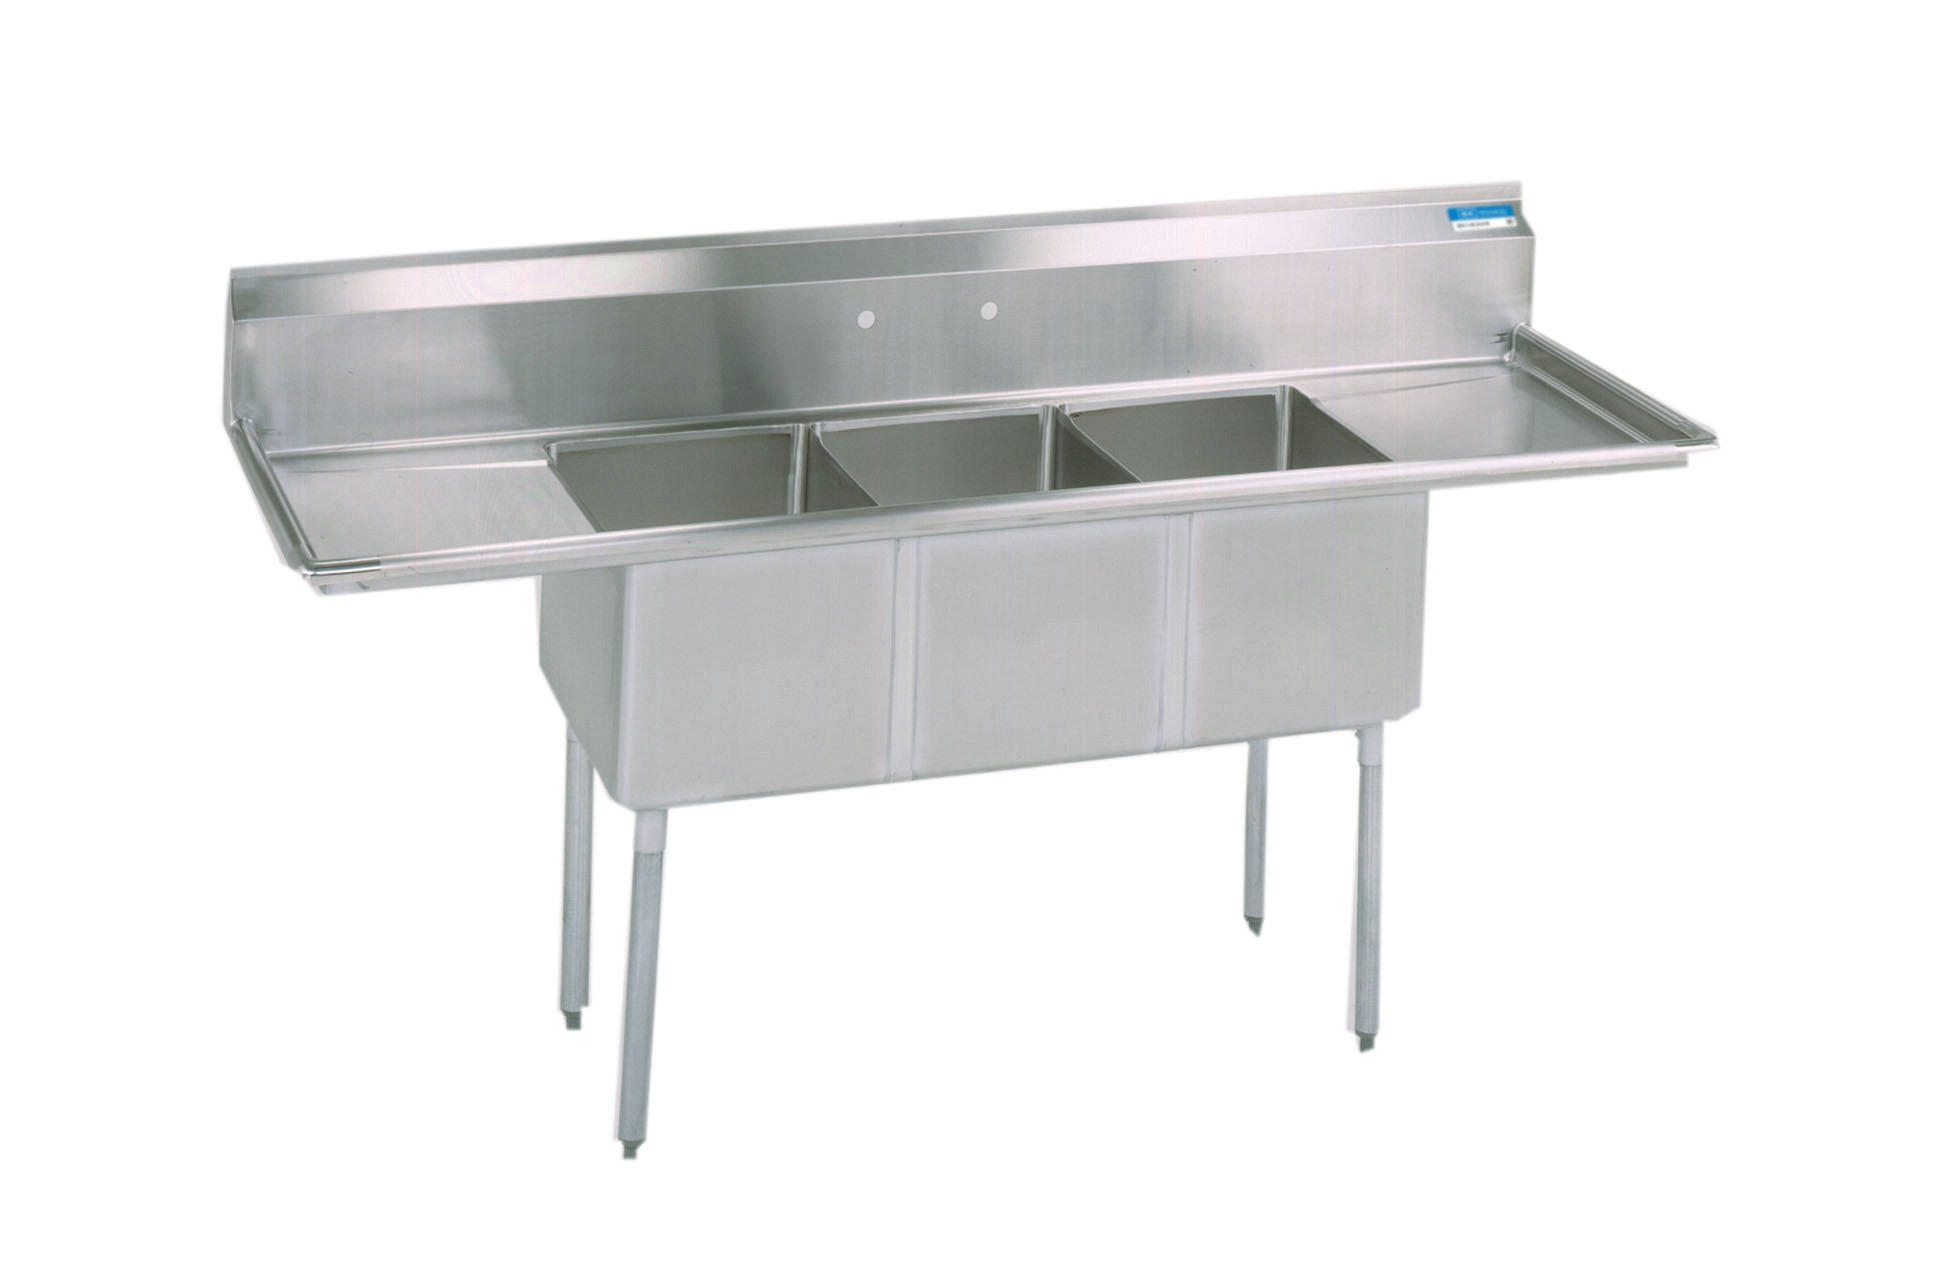 BK Resources Stainless Steel 3 Compartment Sink with Left and Right Hand Drainboards, 84''W x 25-13/16''D